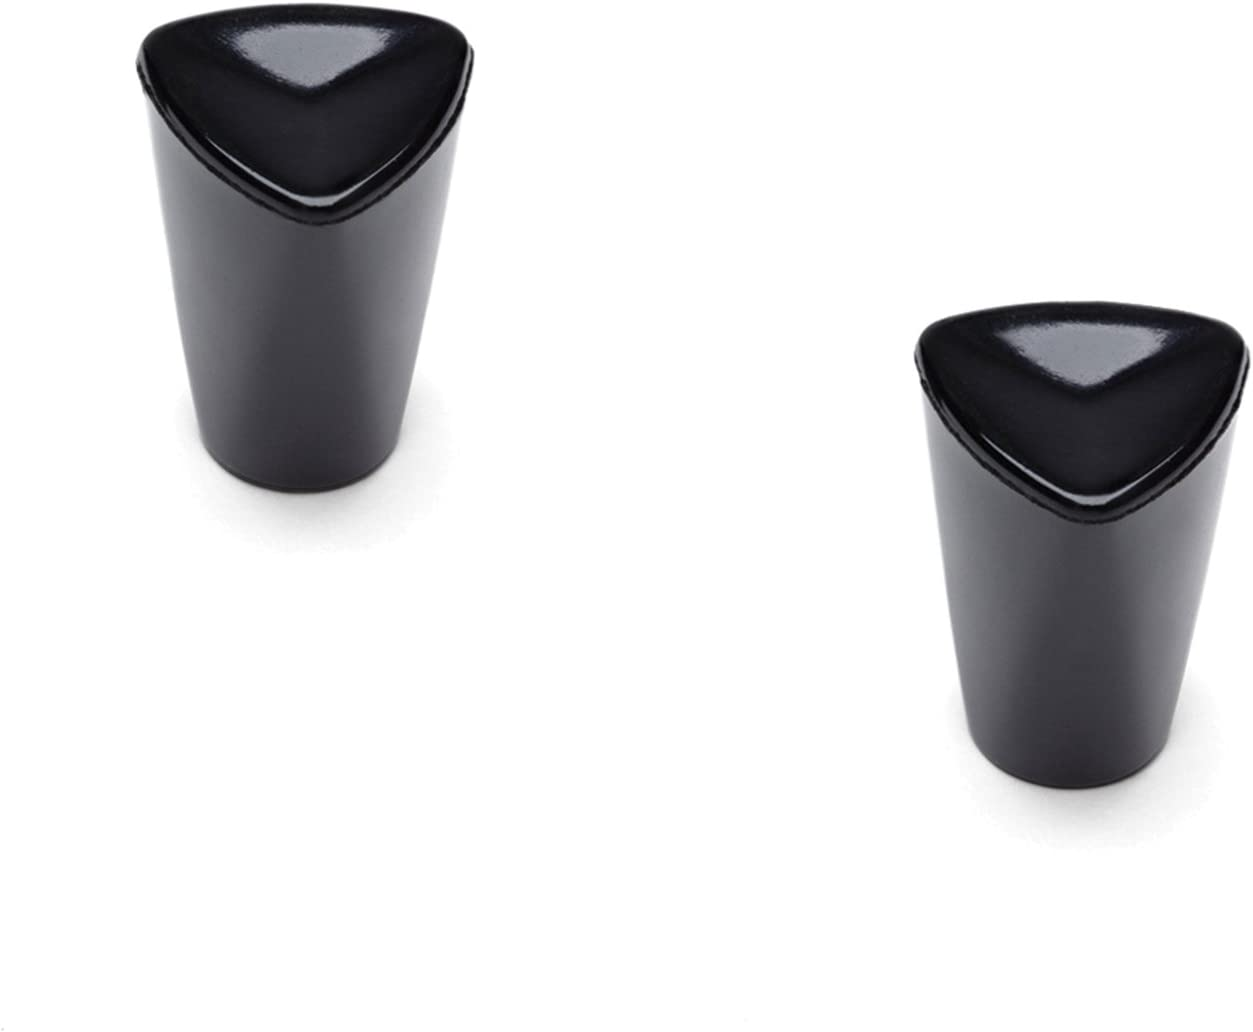 Tops 55706 Fitz-All Replacement Pot Knobs, Tall, Set of 2,Black